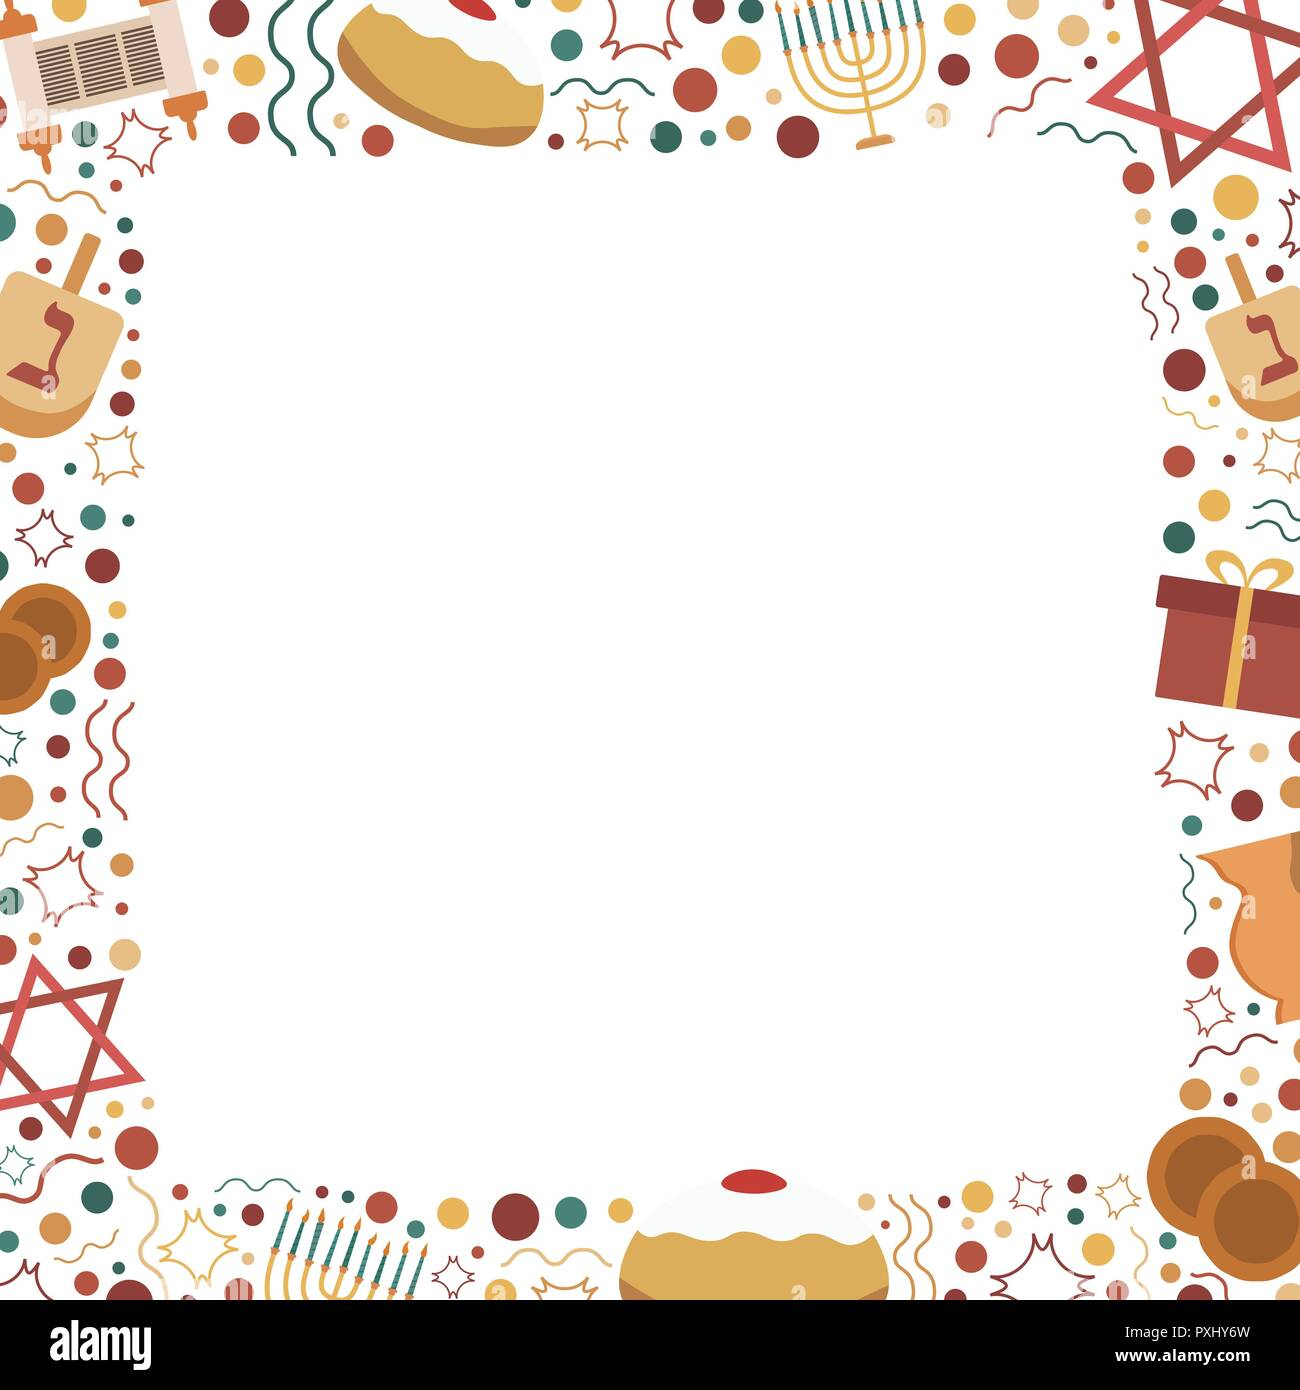 Frame with Hanukkah holiday flat design icons. Template with space for text, isolated on background. - Stock Vector